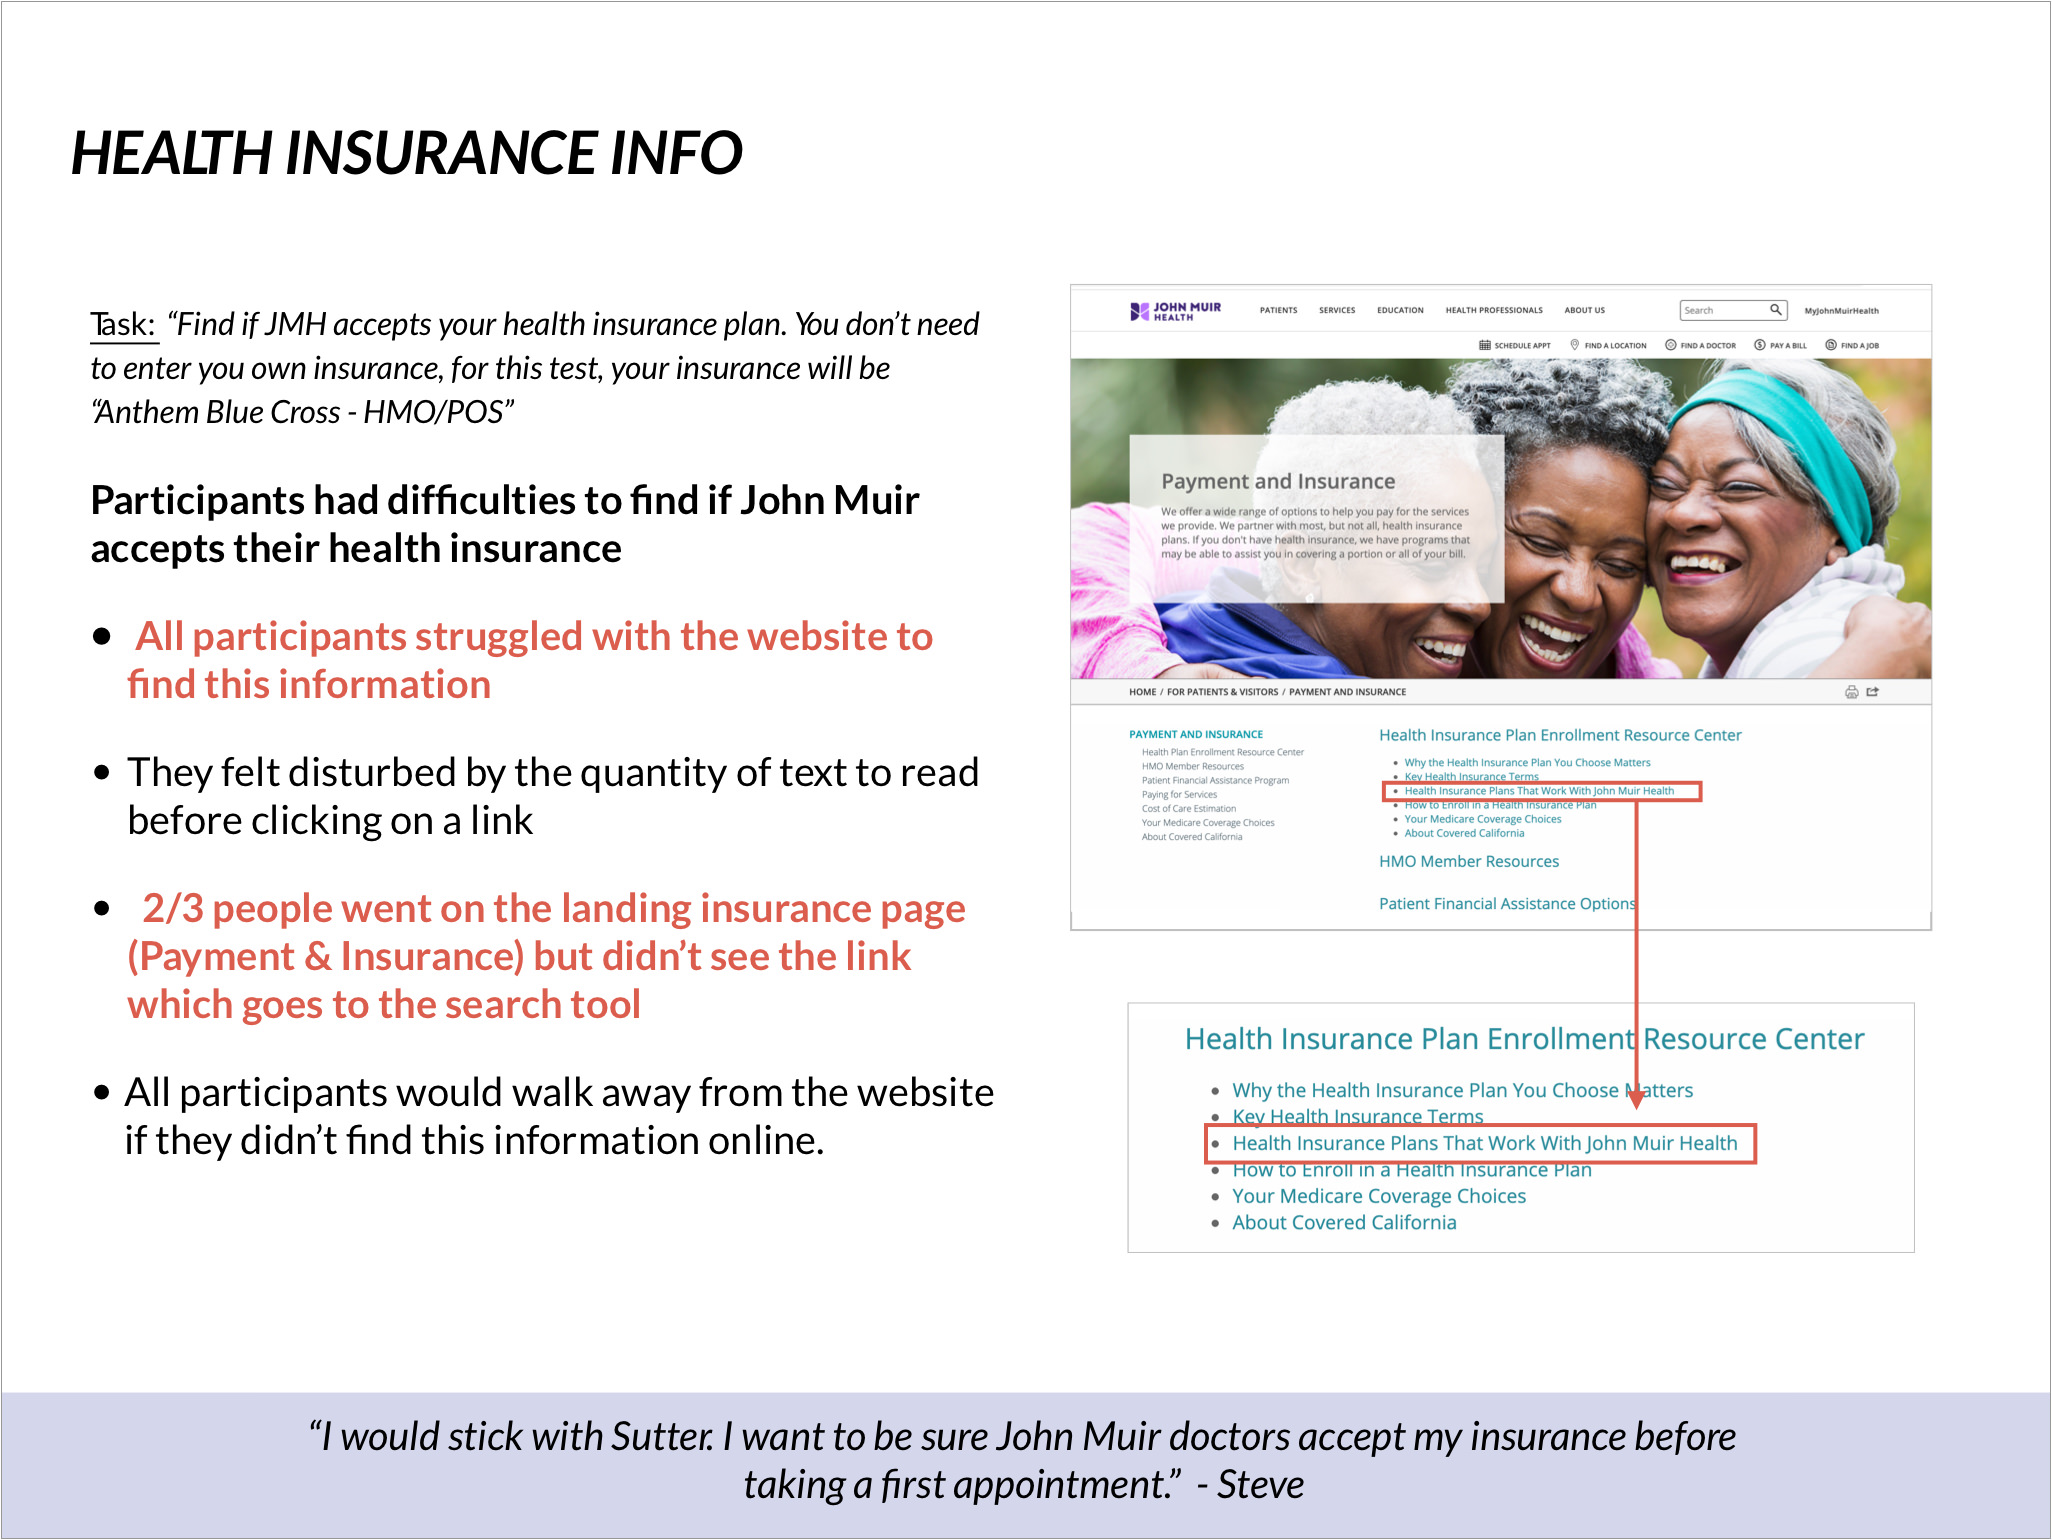 Health insurance issue: participant struggled to find if their health plan was accepted by John Muir Hospital